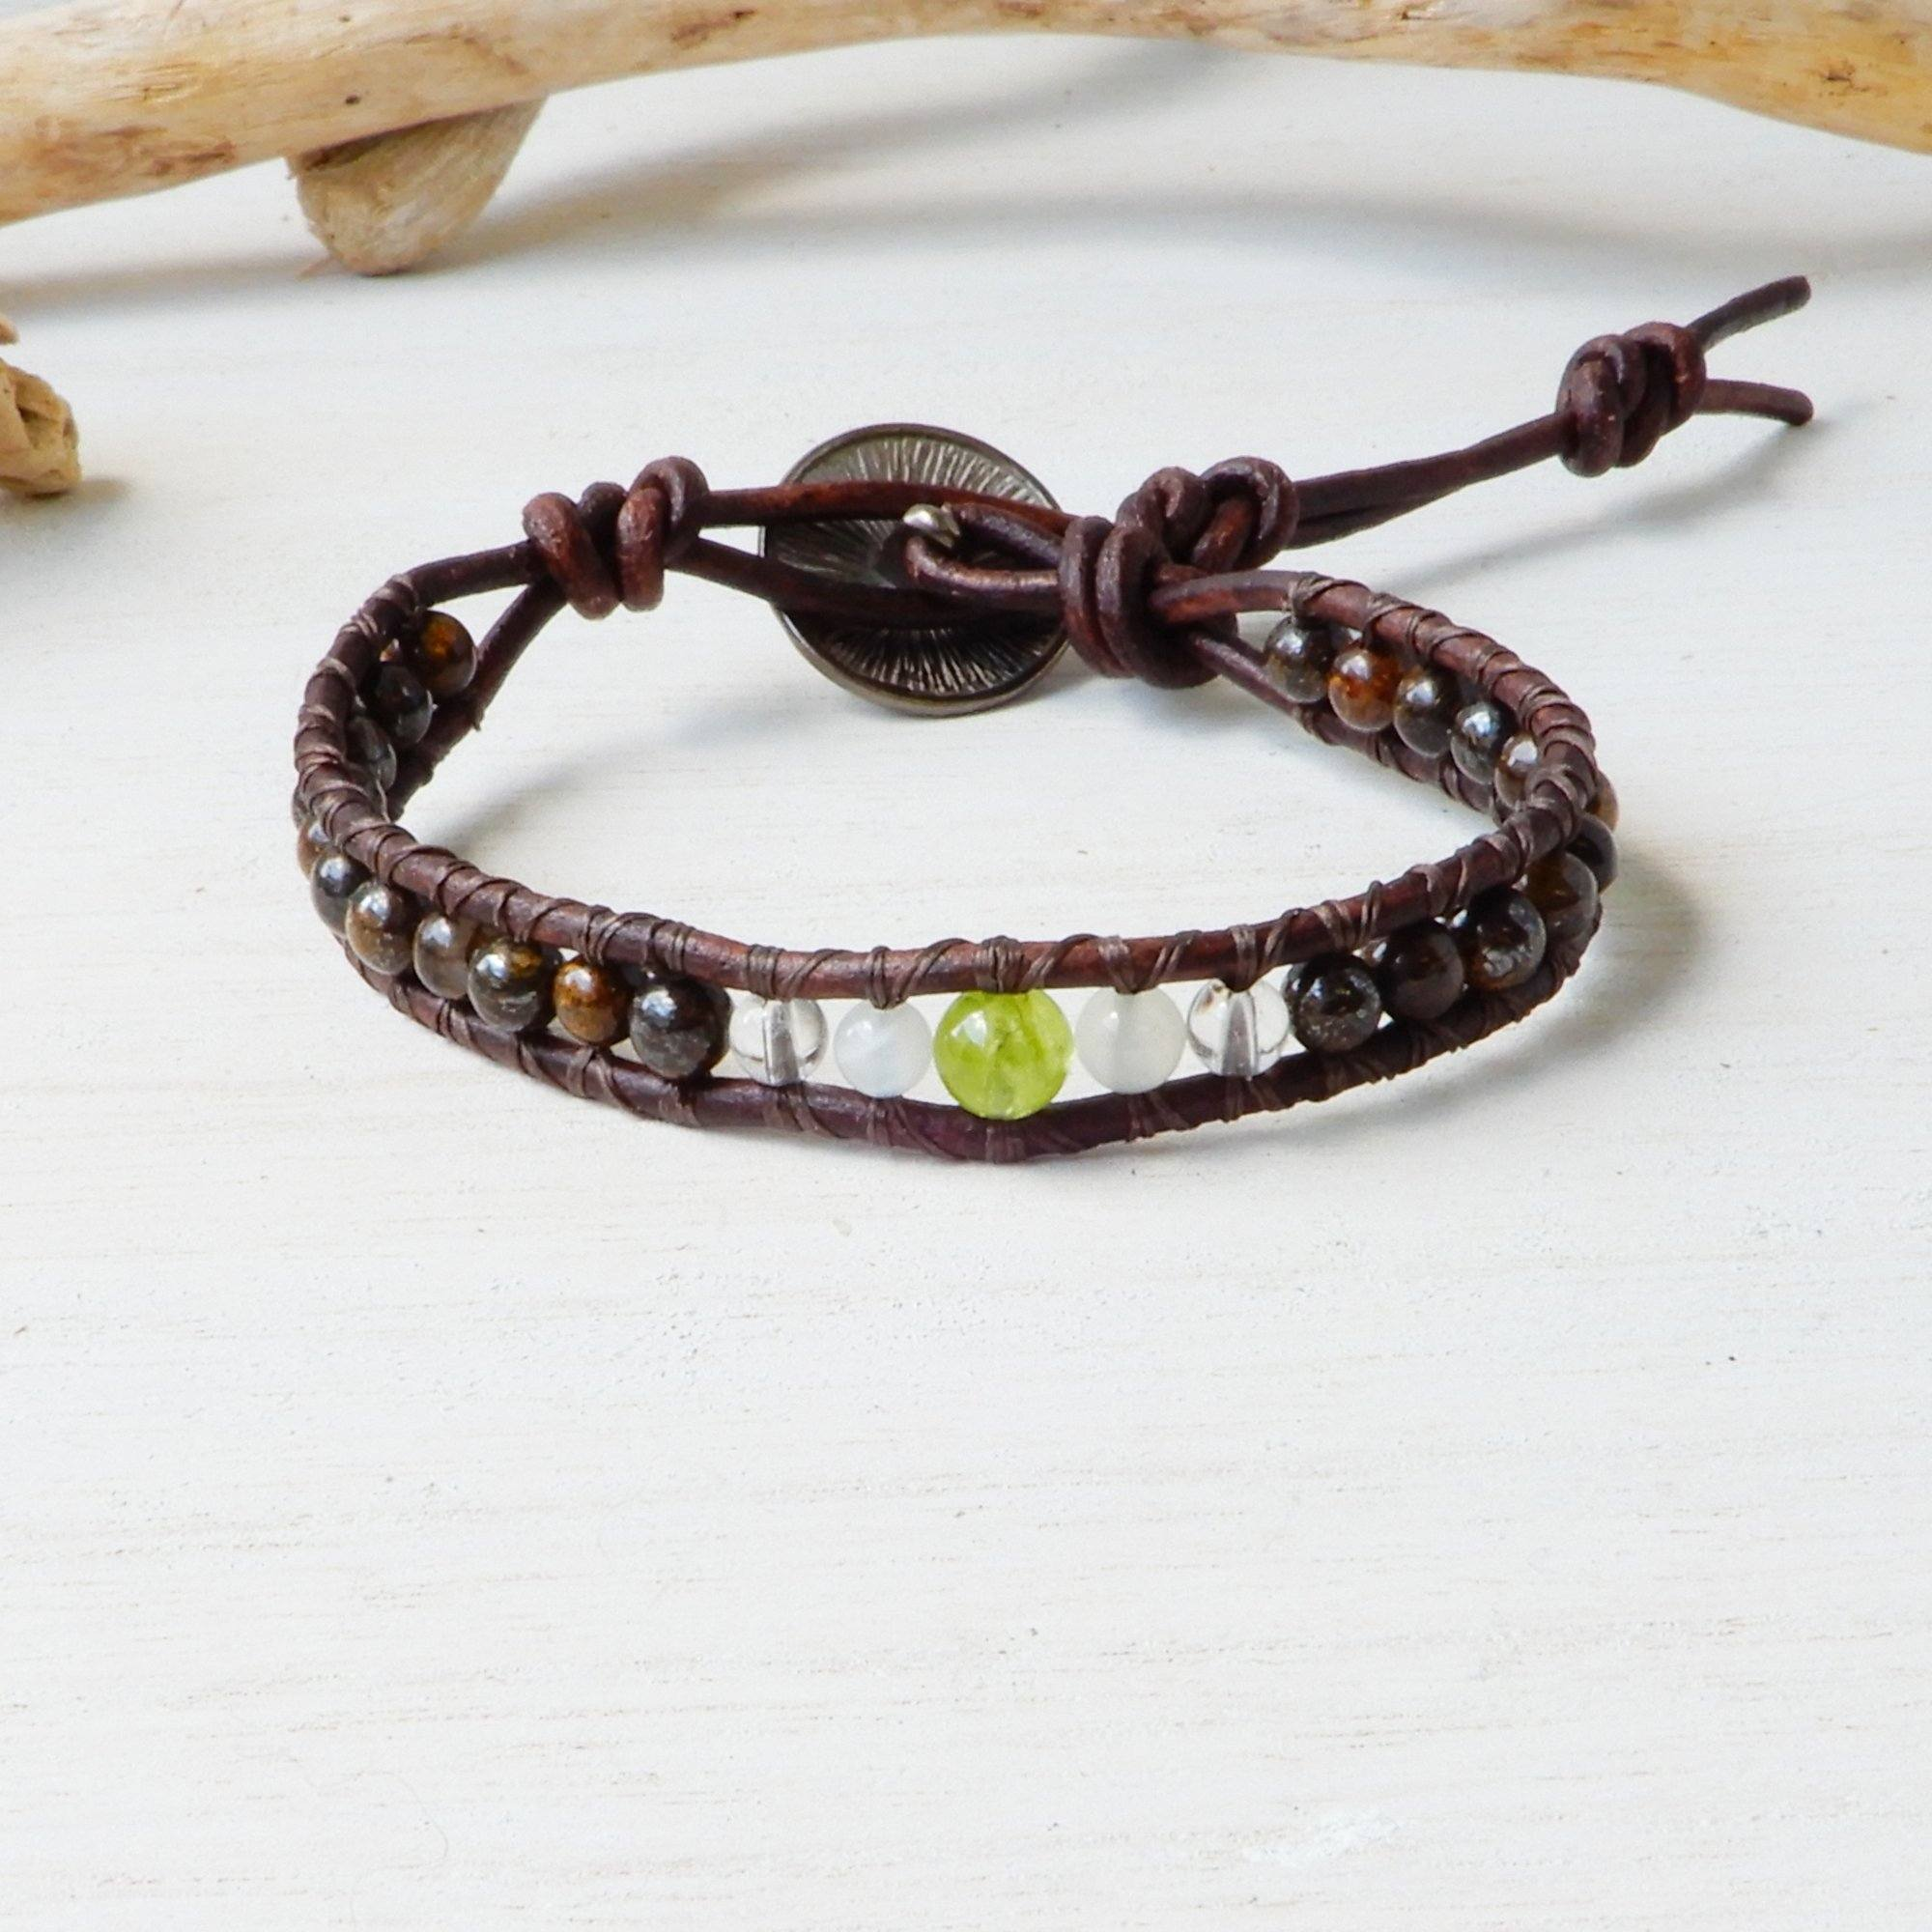 Bracelet - Birthstone Leather Wrap Bracelet | MY HEART